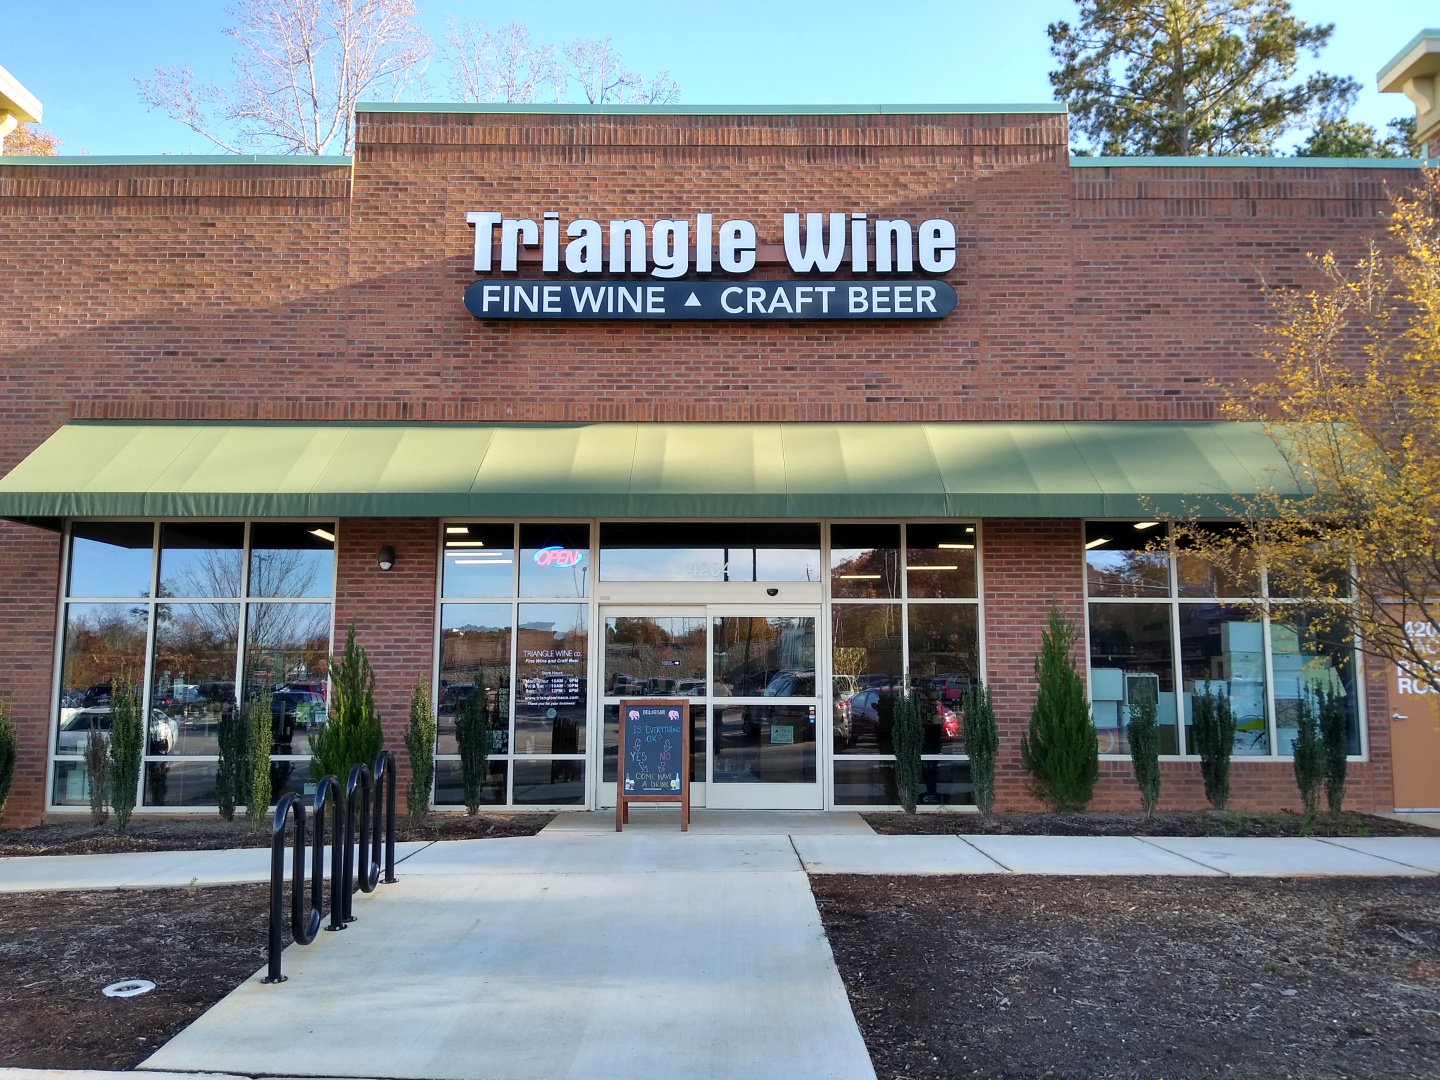 Triangle Wine Company Holly Springs, NC Wine Beer Store Sunset Lake Road Holly Springs Road